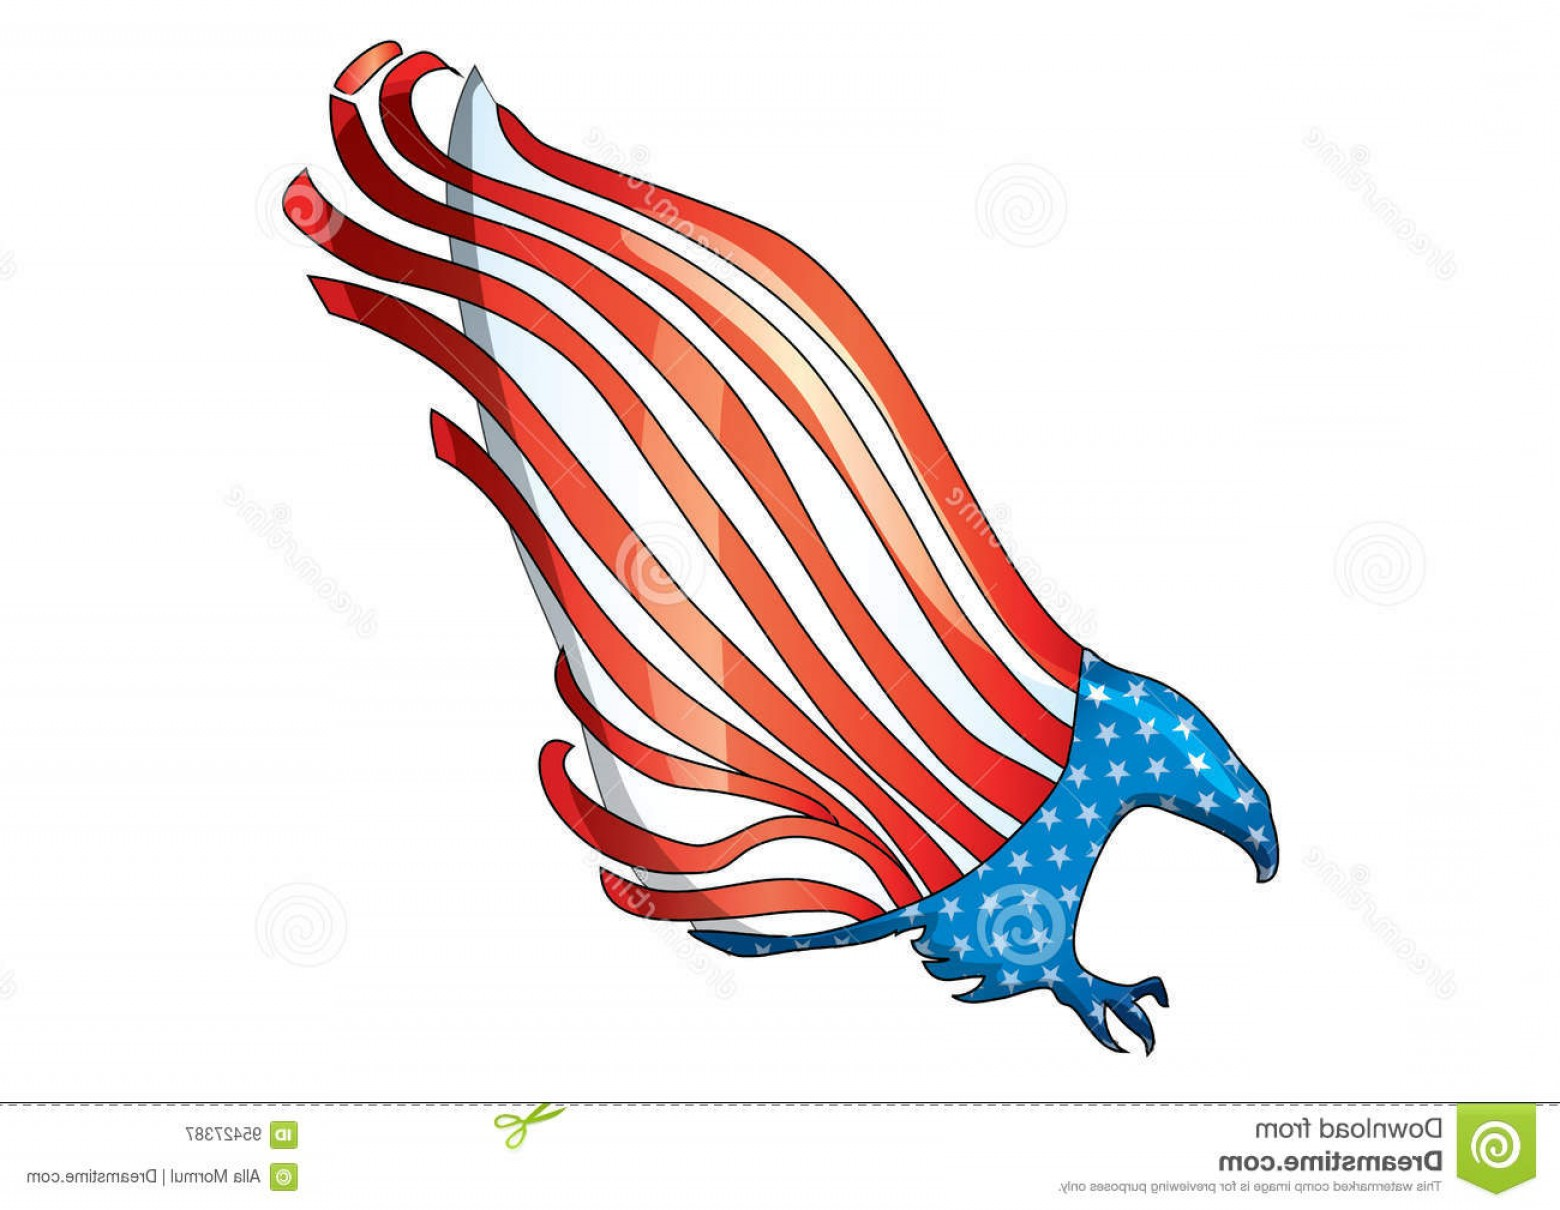 Eagle Banner Vector: Stock Illustration Usa Flag Eagle Vector Ai Th July American Clip Art Banner Decals Decorations Paper Poster T Shirt Scrapbooking Image